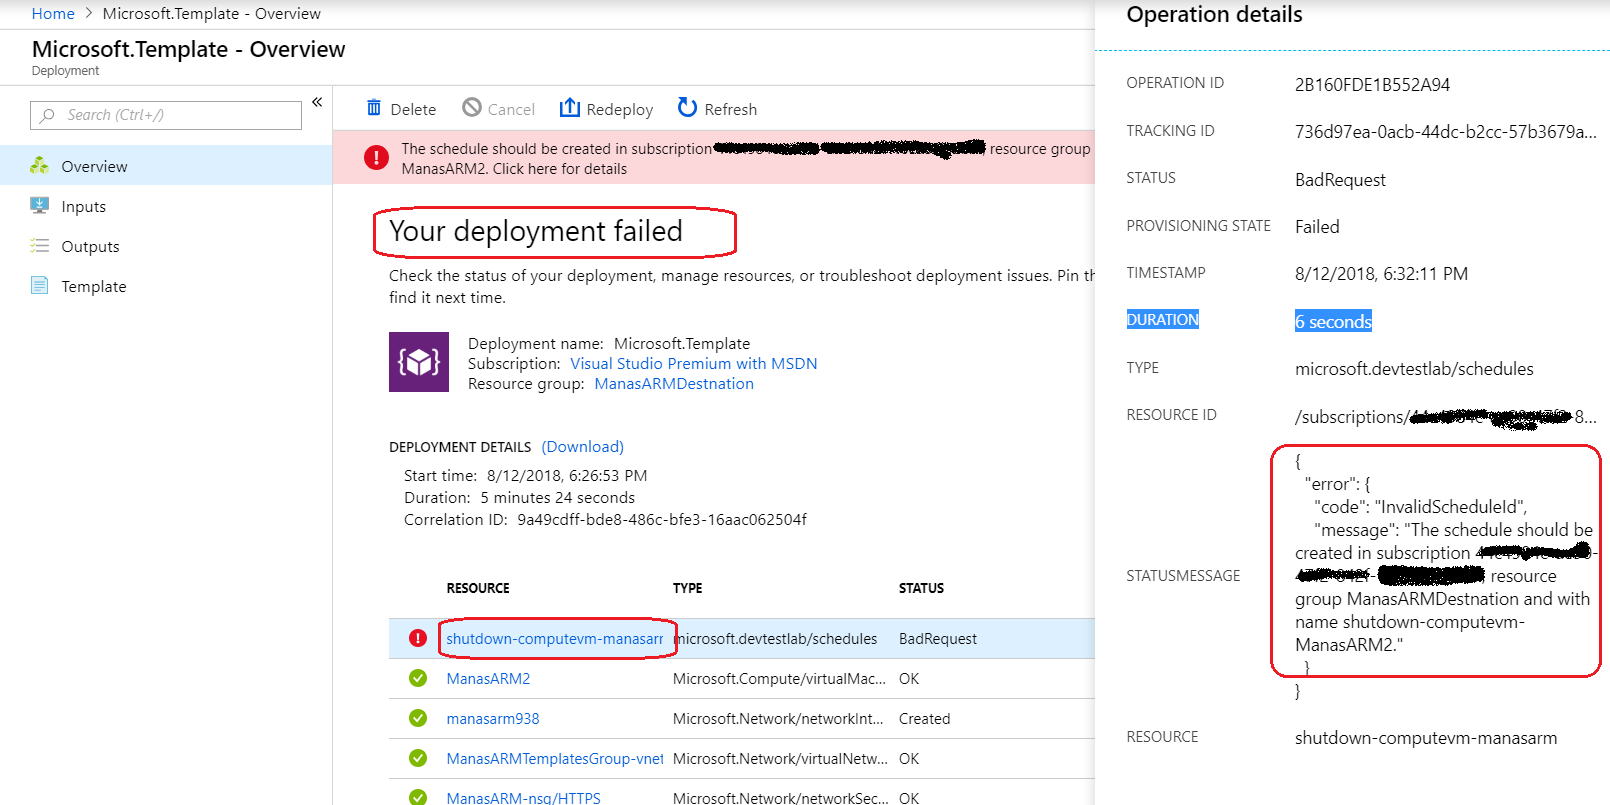 Azure – The schedule should be created in subscription error